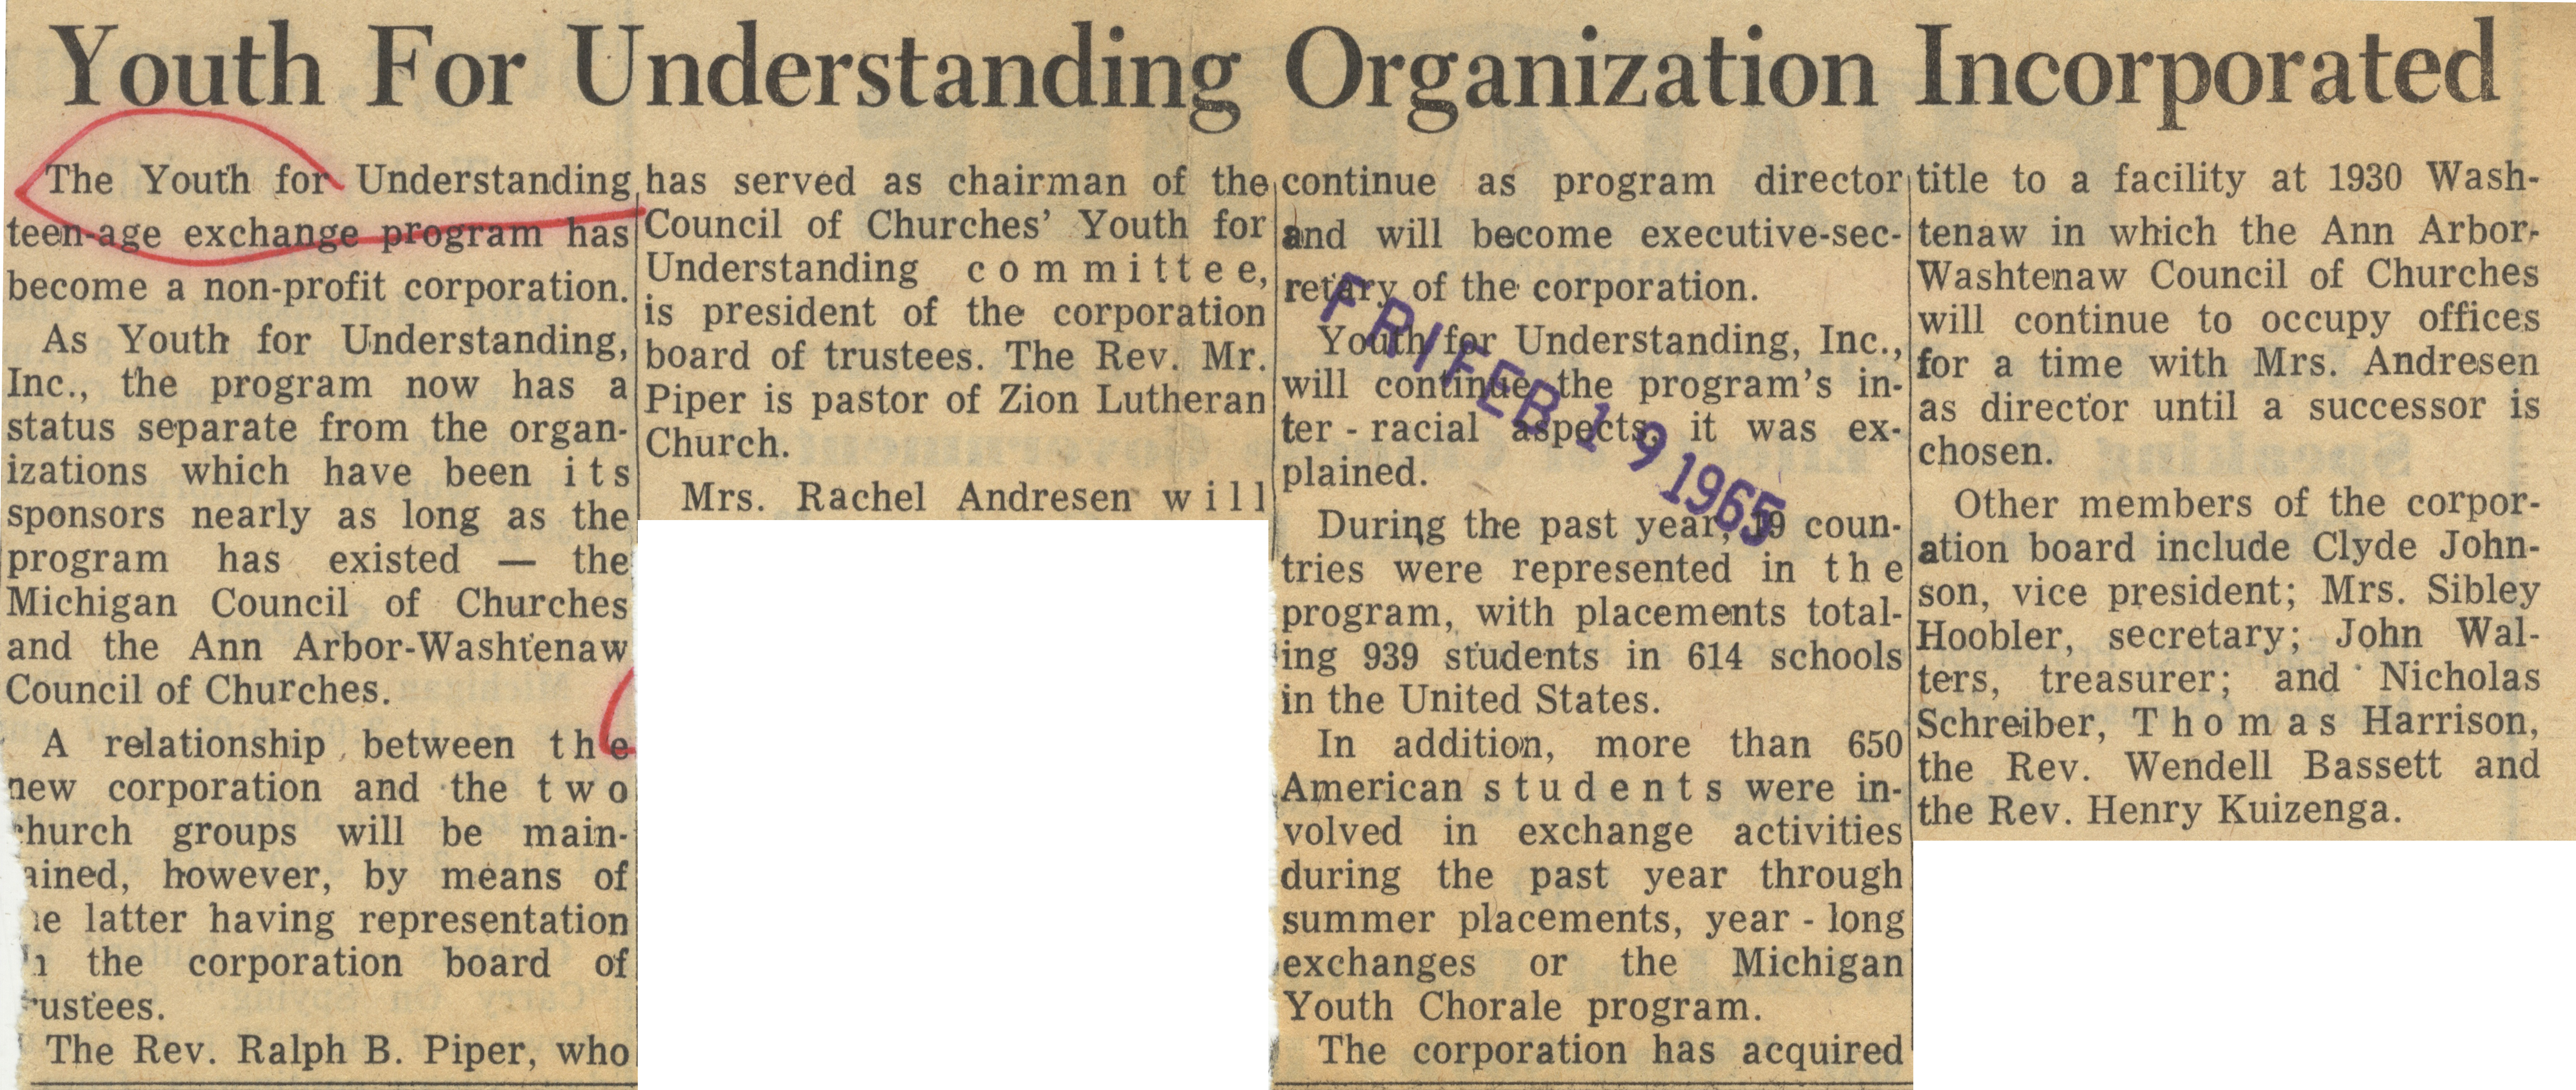 Youth For Understanding Organization Incorporated image